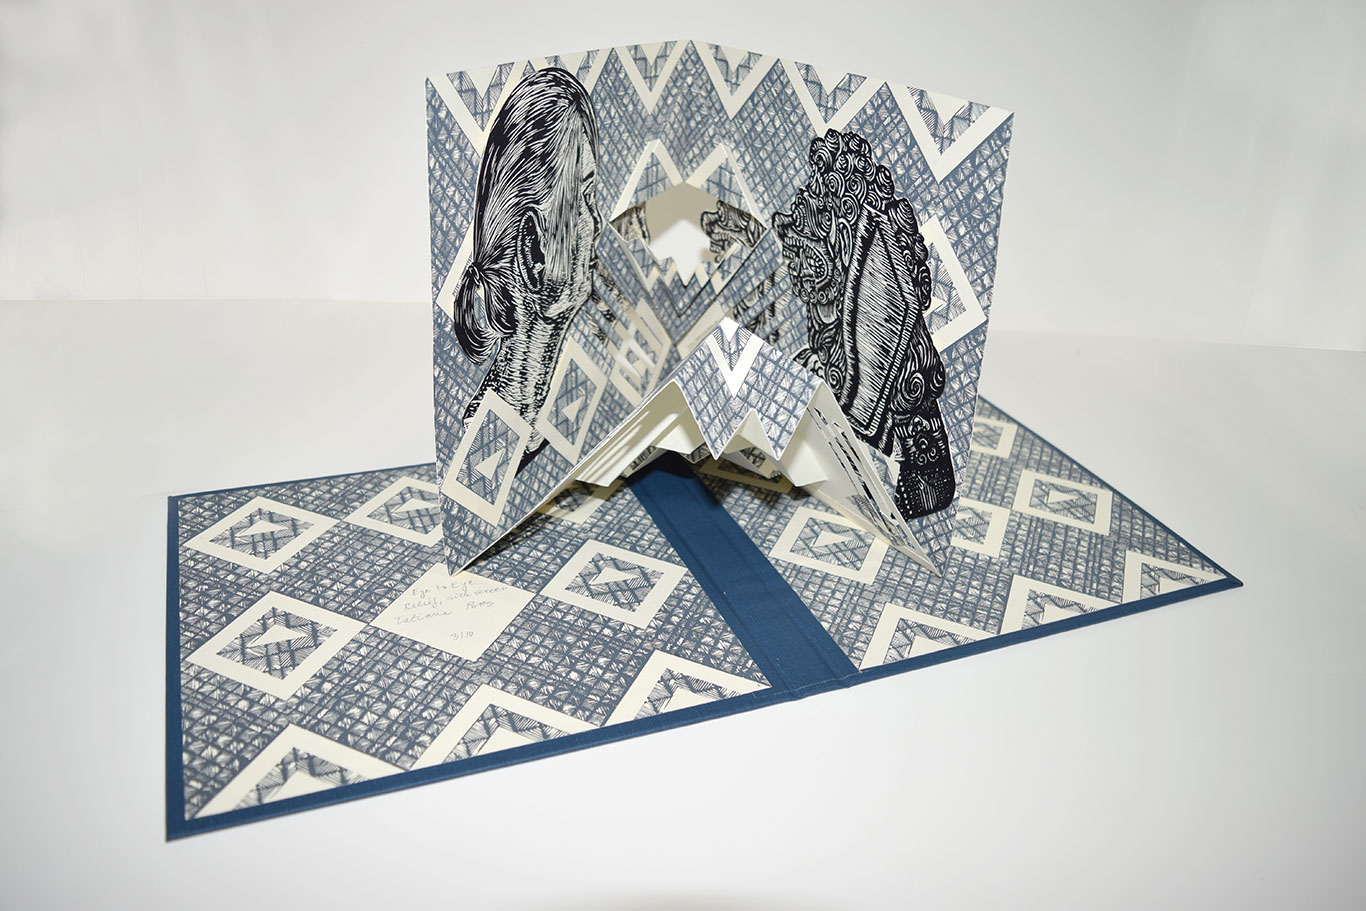 Handmade Artist's Book by Tatiana Potts